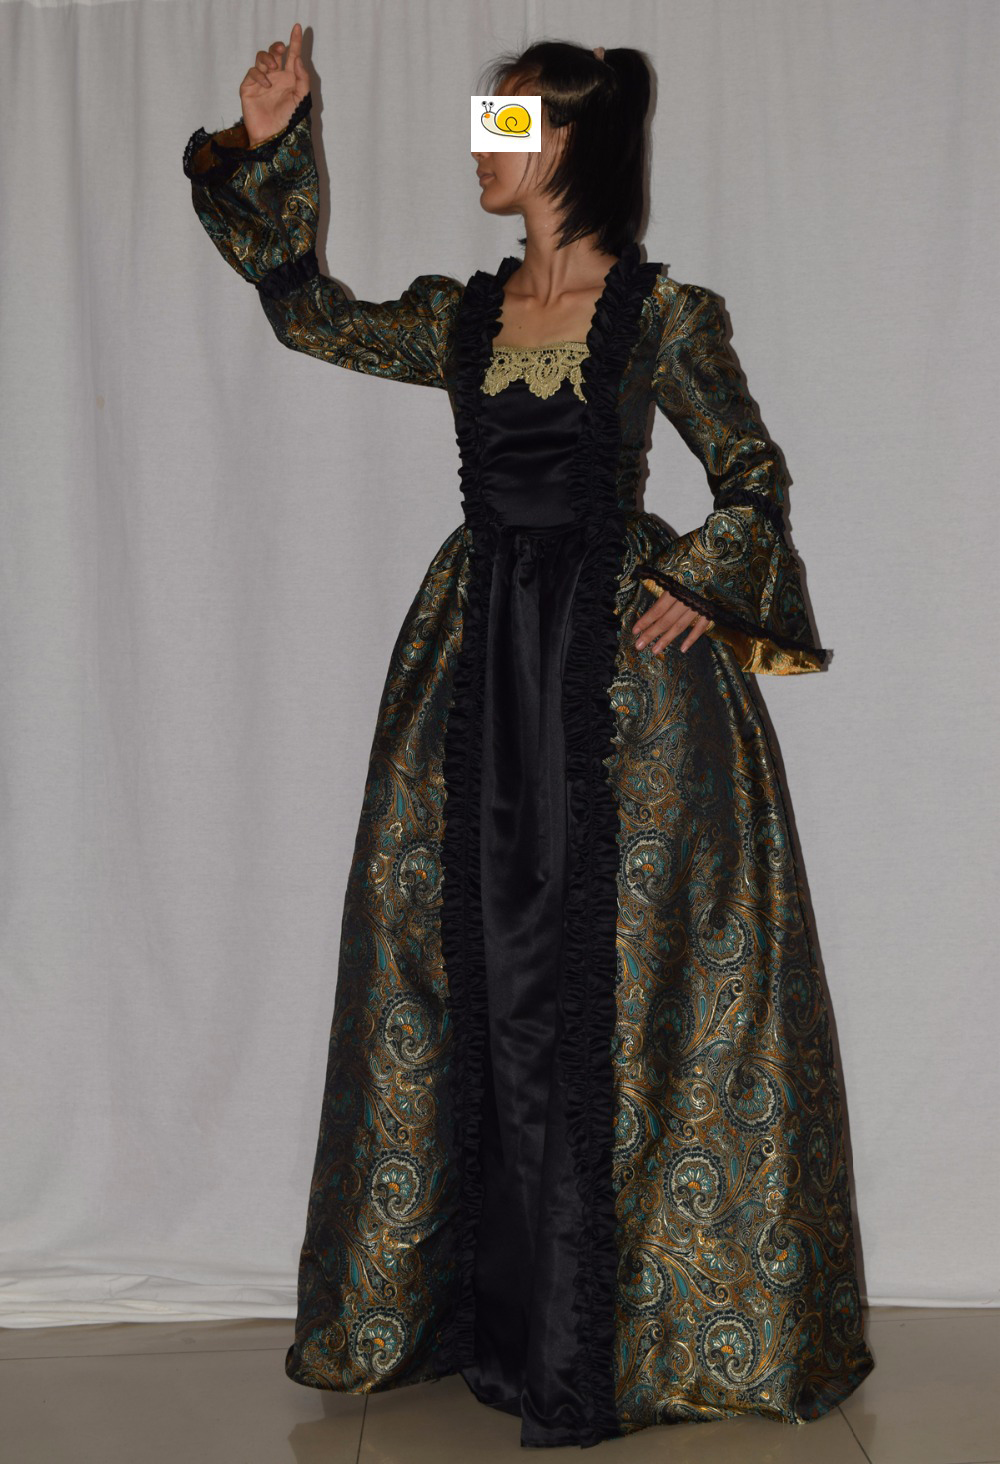 Fantasy Gothic Victorian Gown victorian ball gown Period Long Train Costume